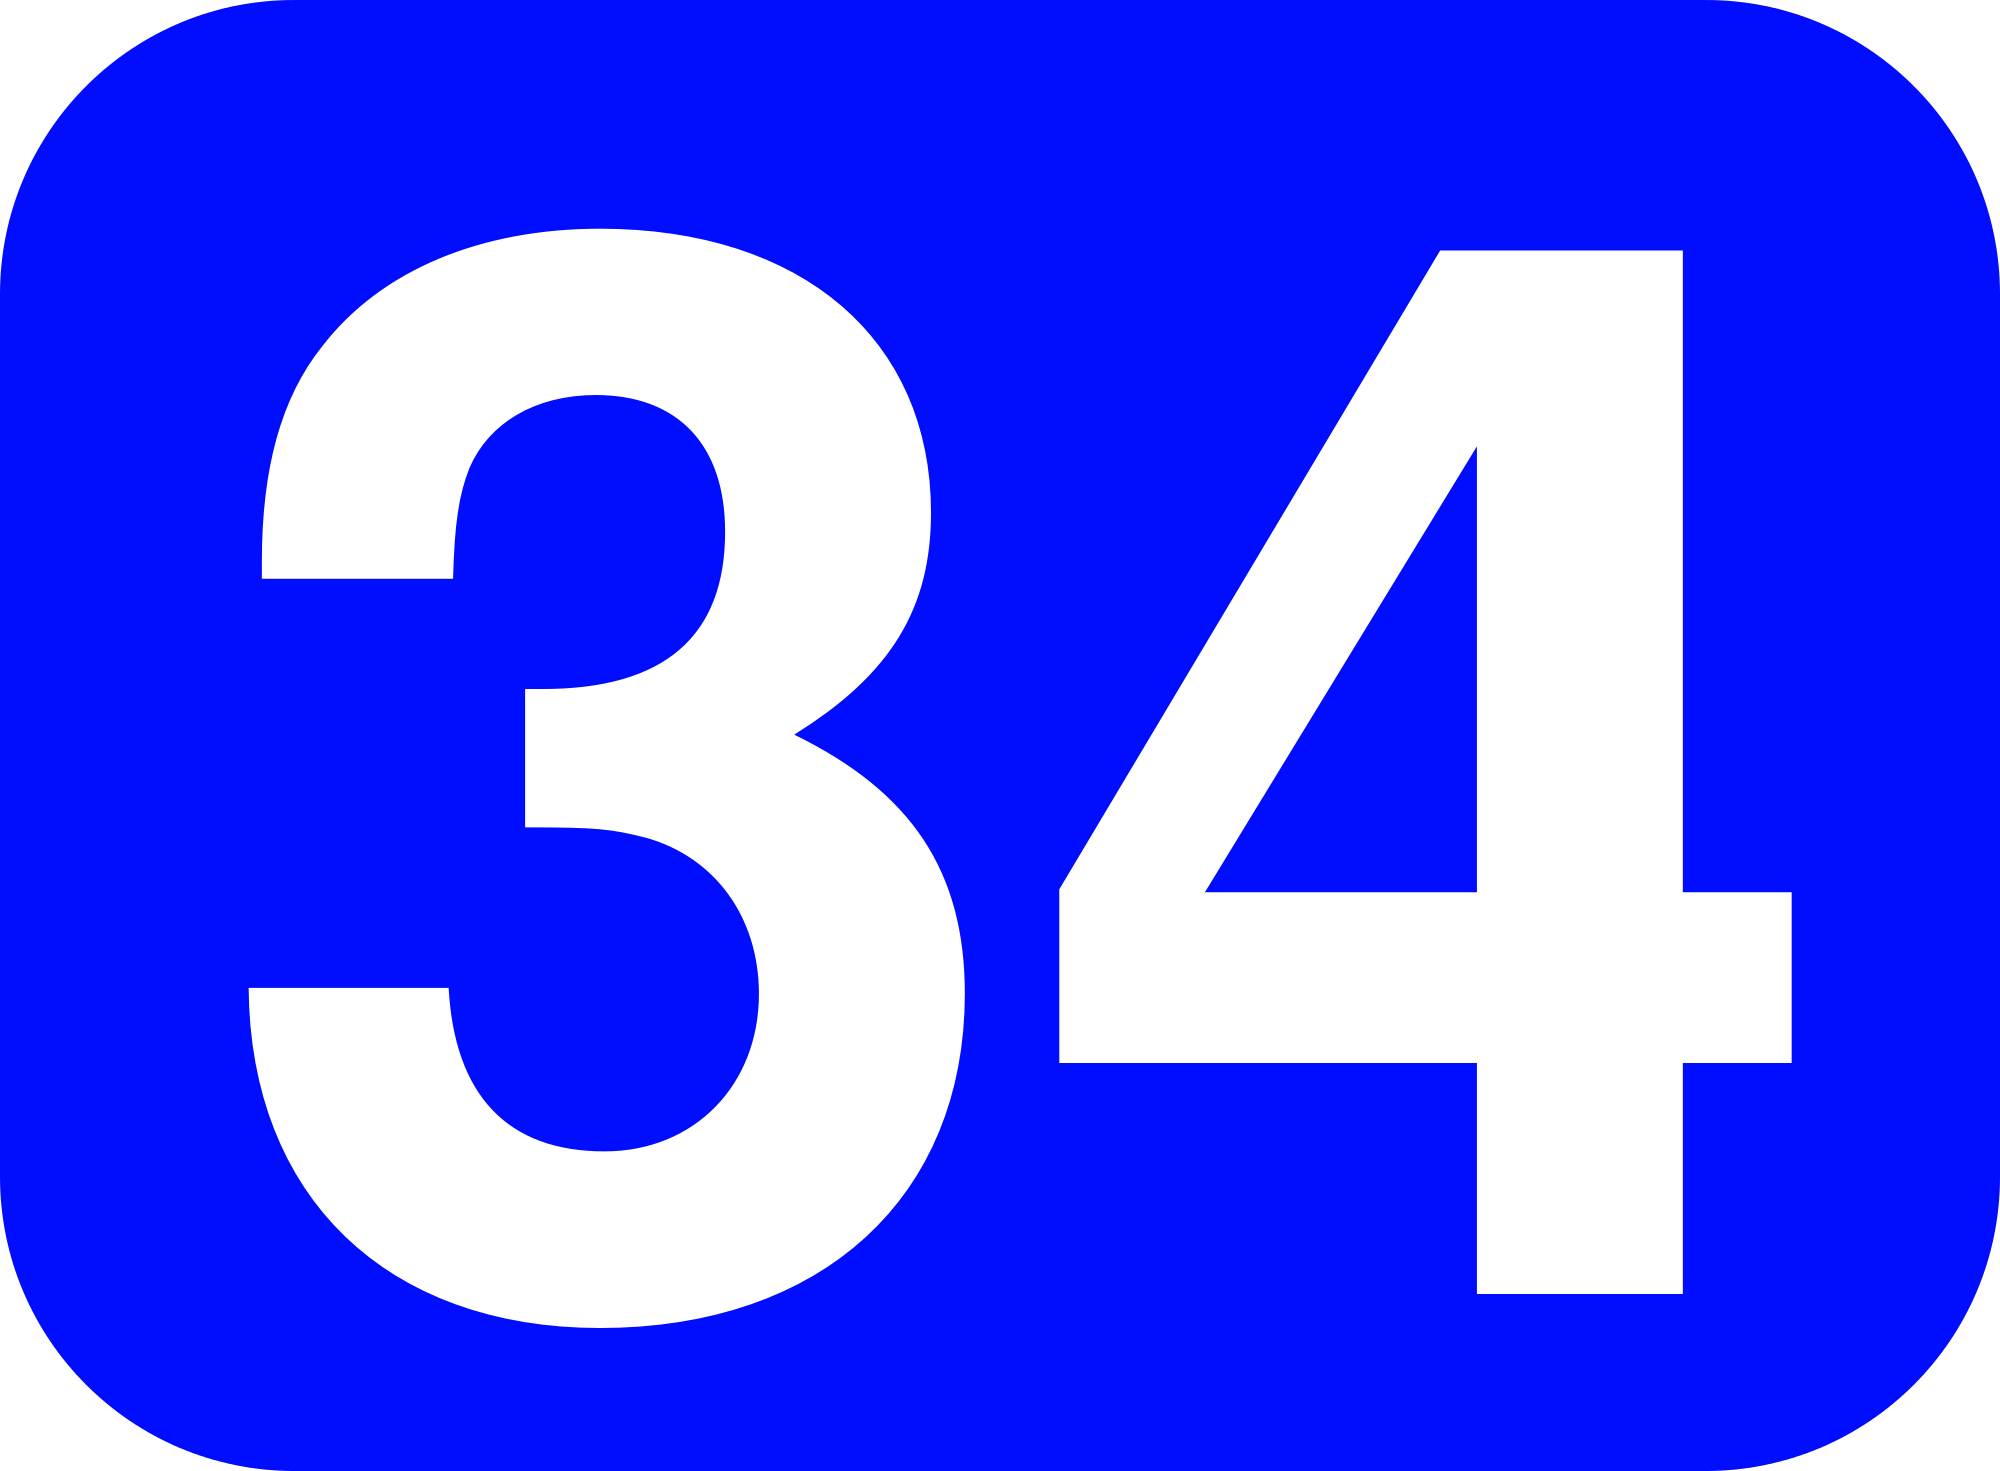 File:34 white, blue rounded rectangle.png - Wikimedia Commons